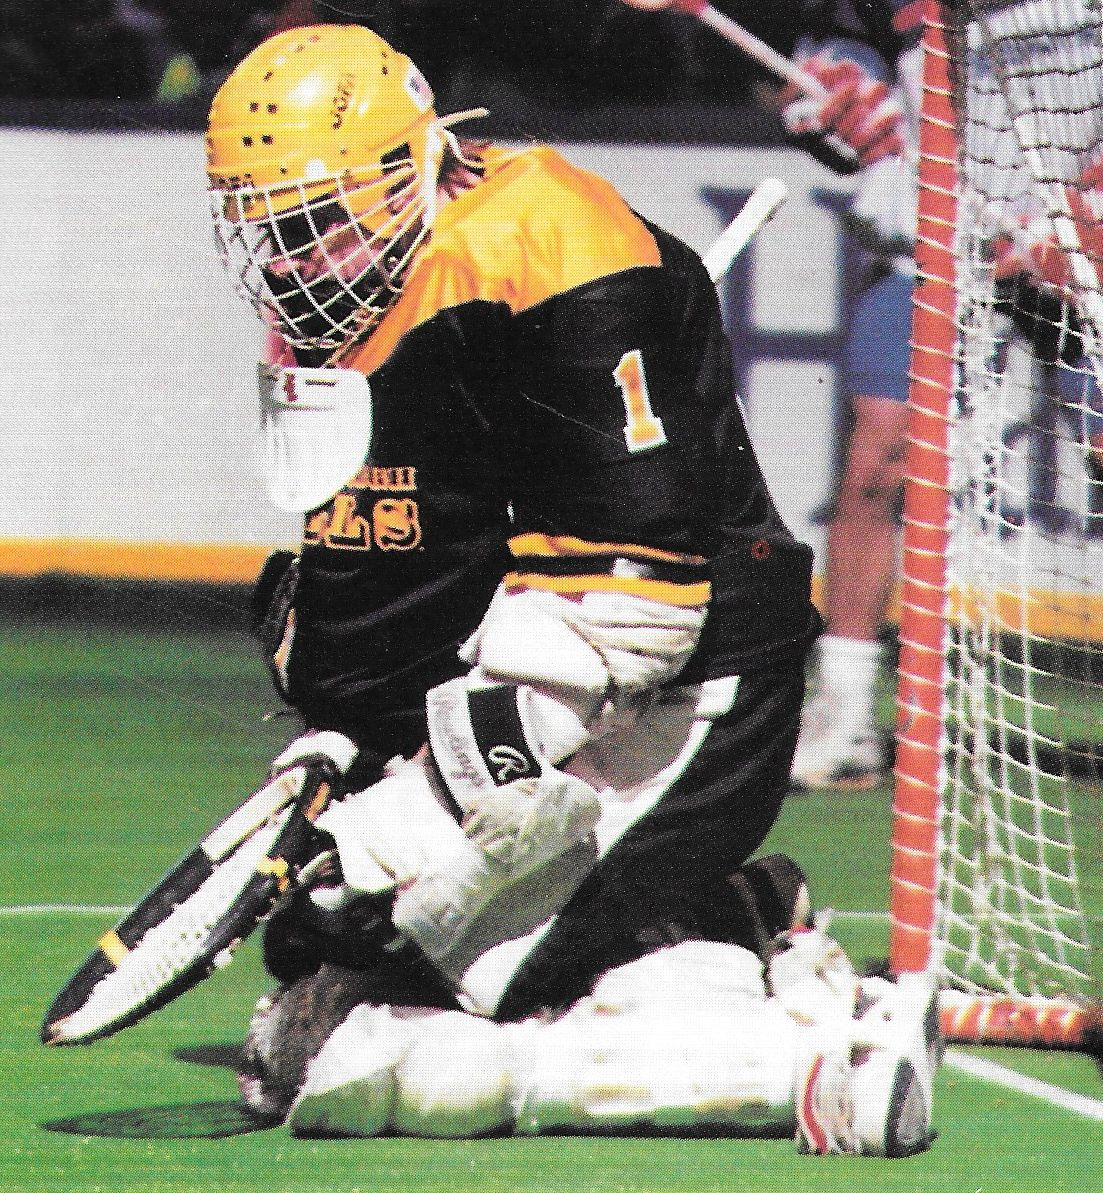 Bulls' win showcases new goalie and defense